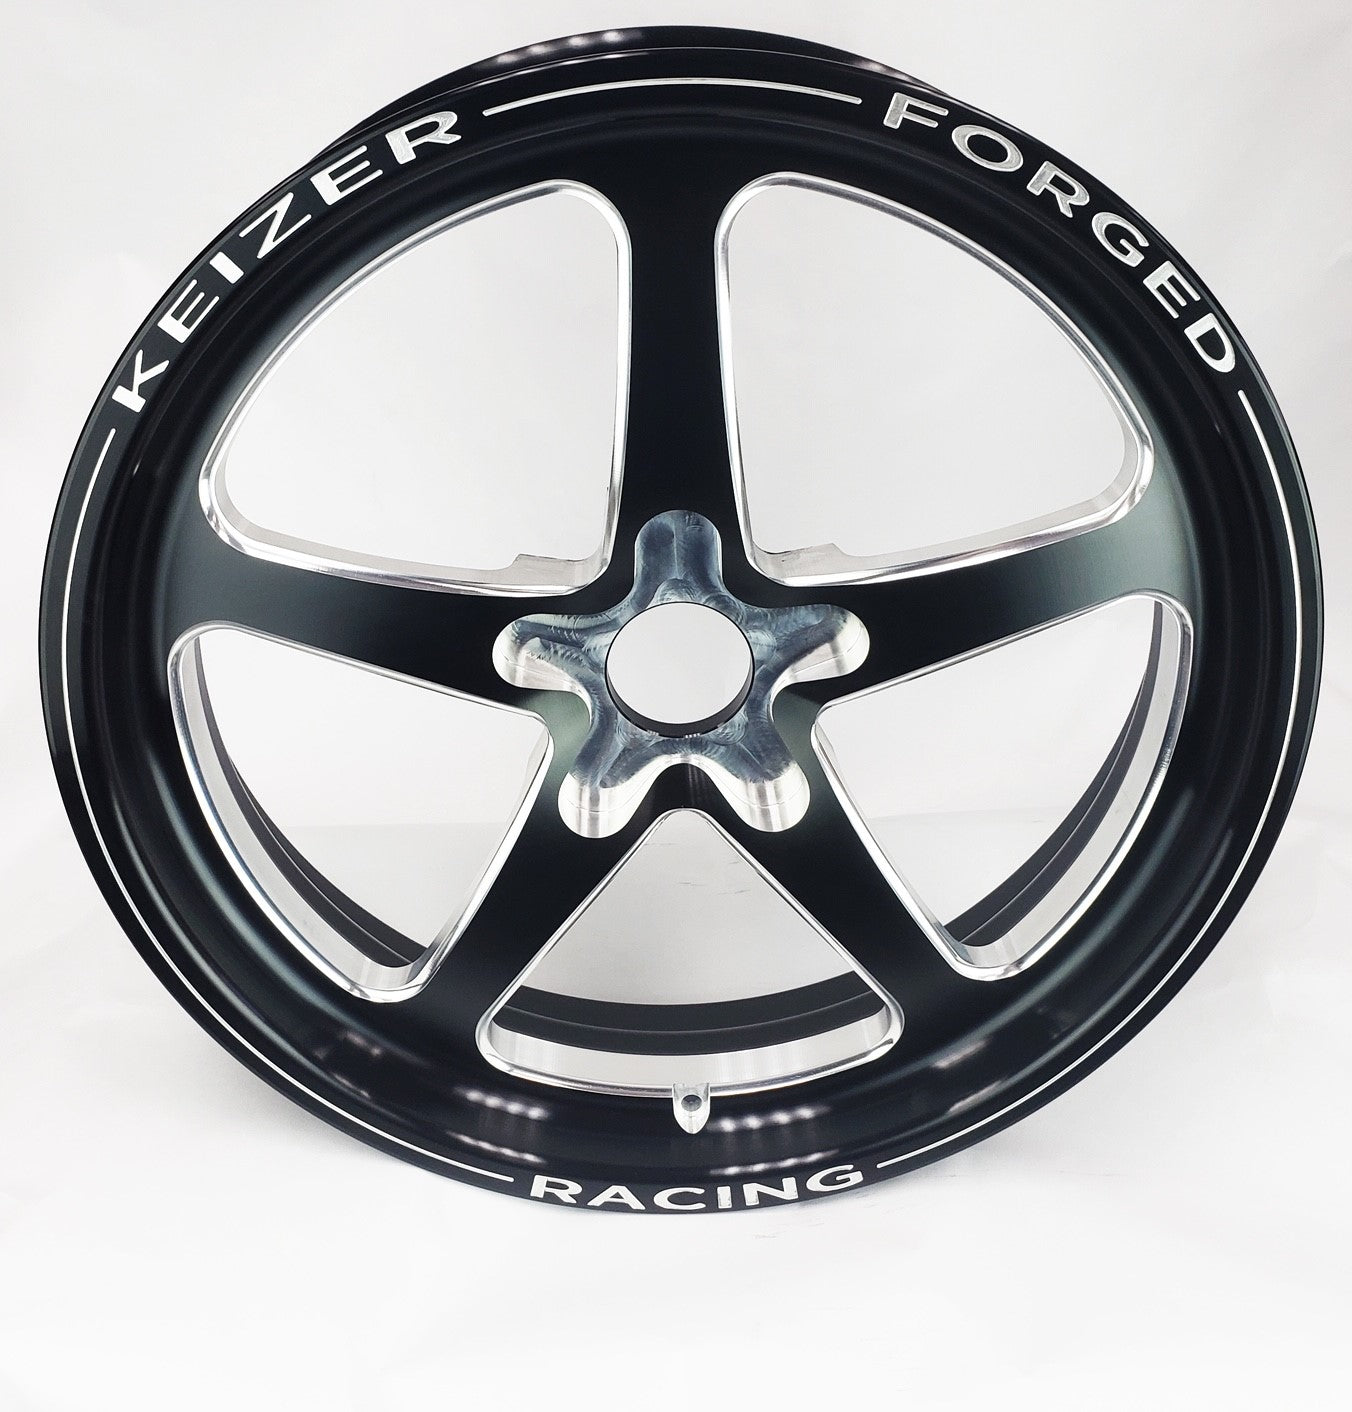 KEIZER FULL HOUSE FORGED WHEEL (FRONT)